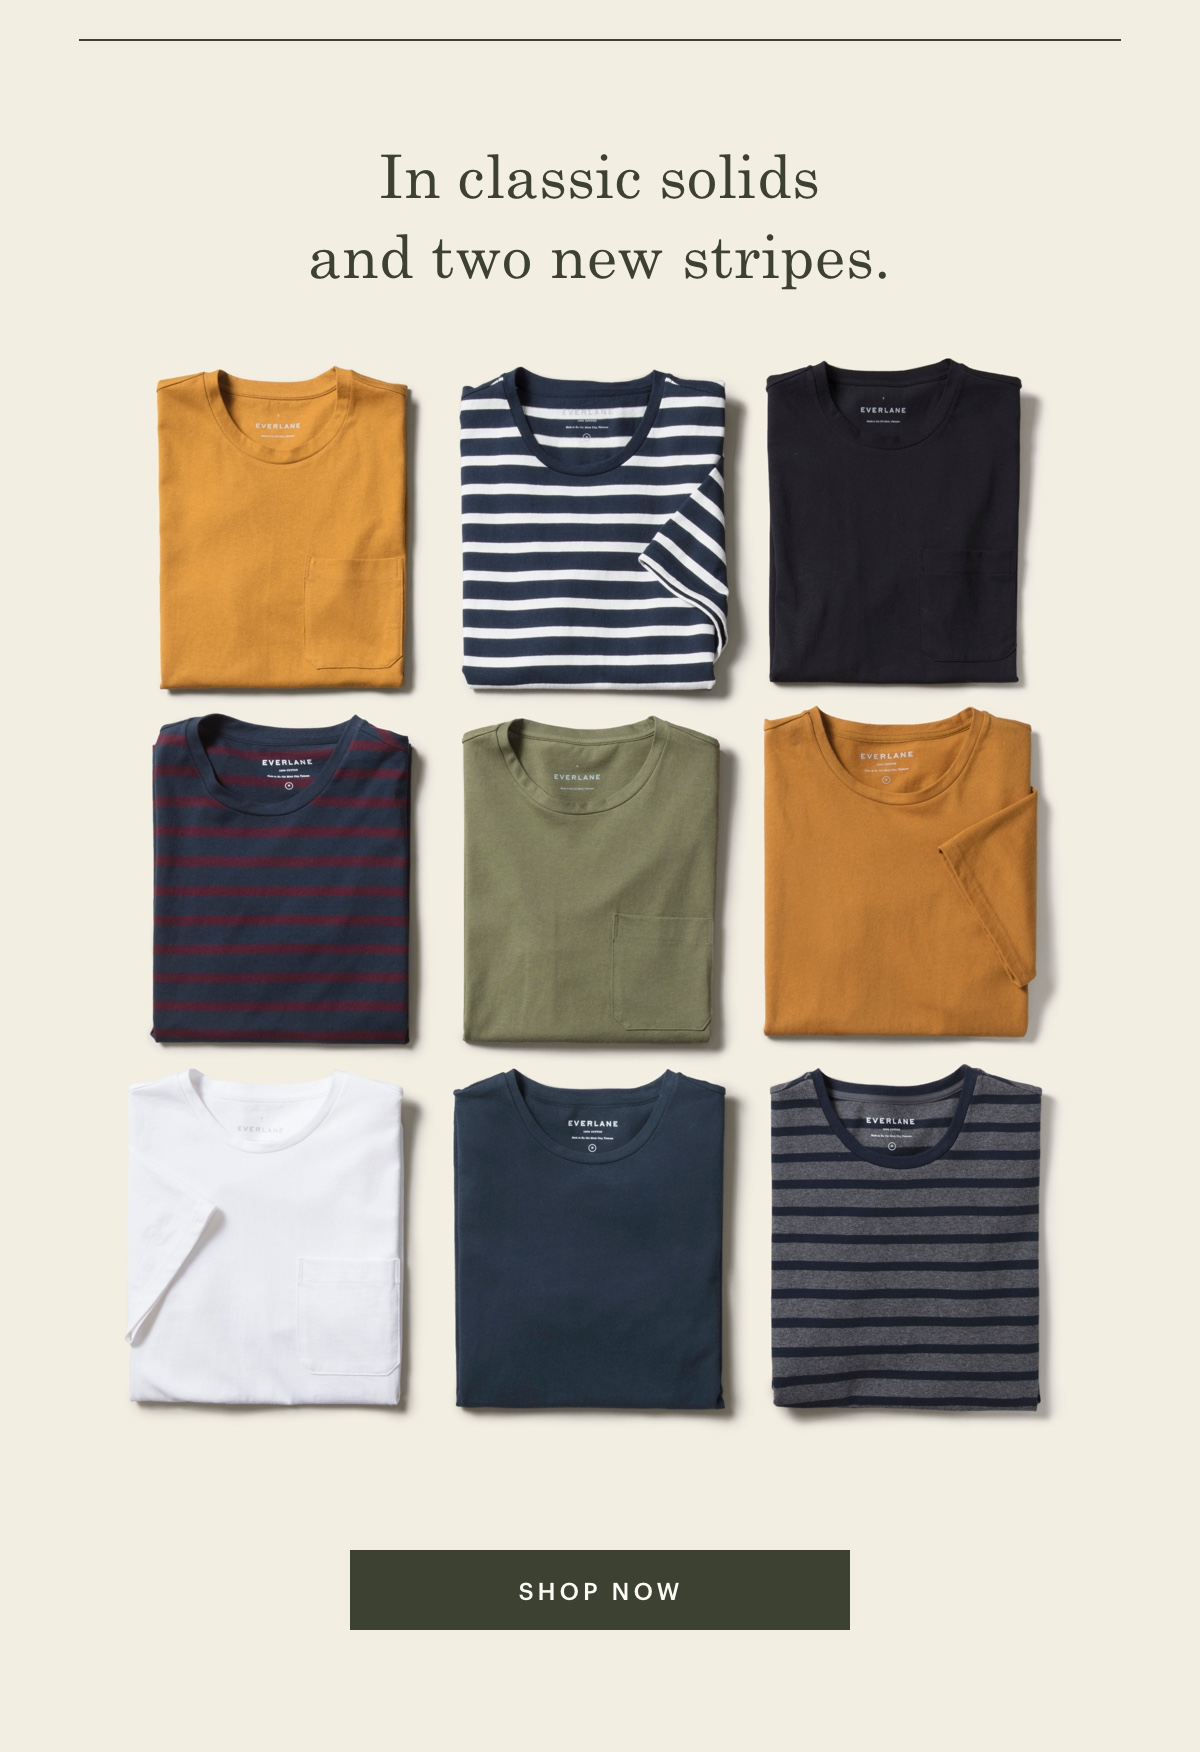 In classic solids and two new stripes.